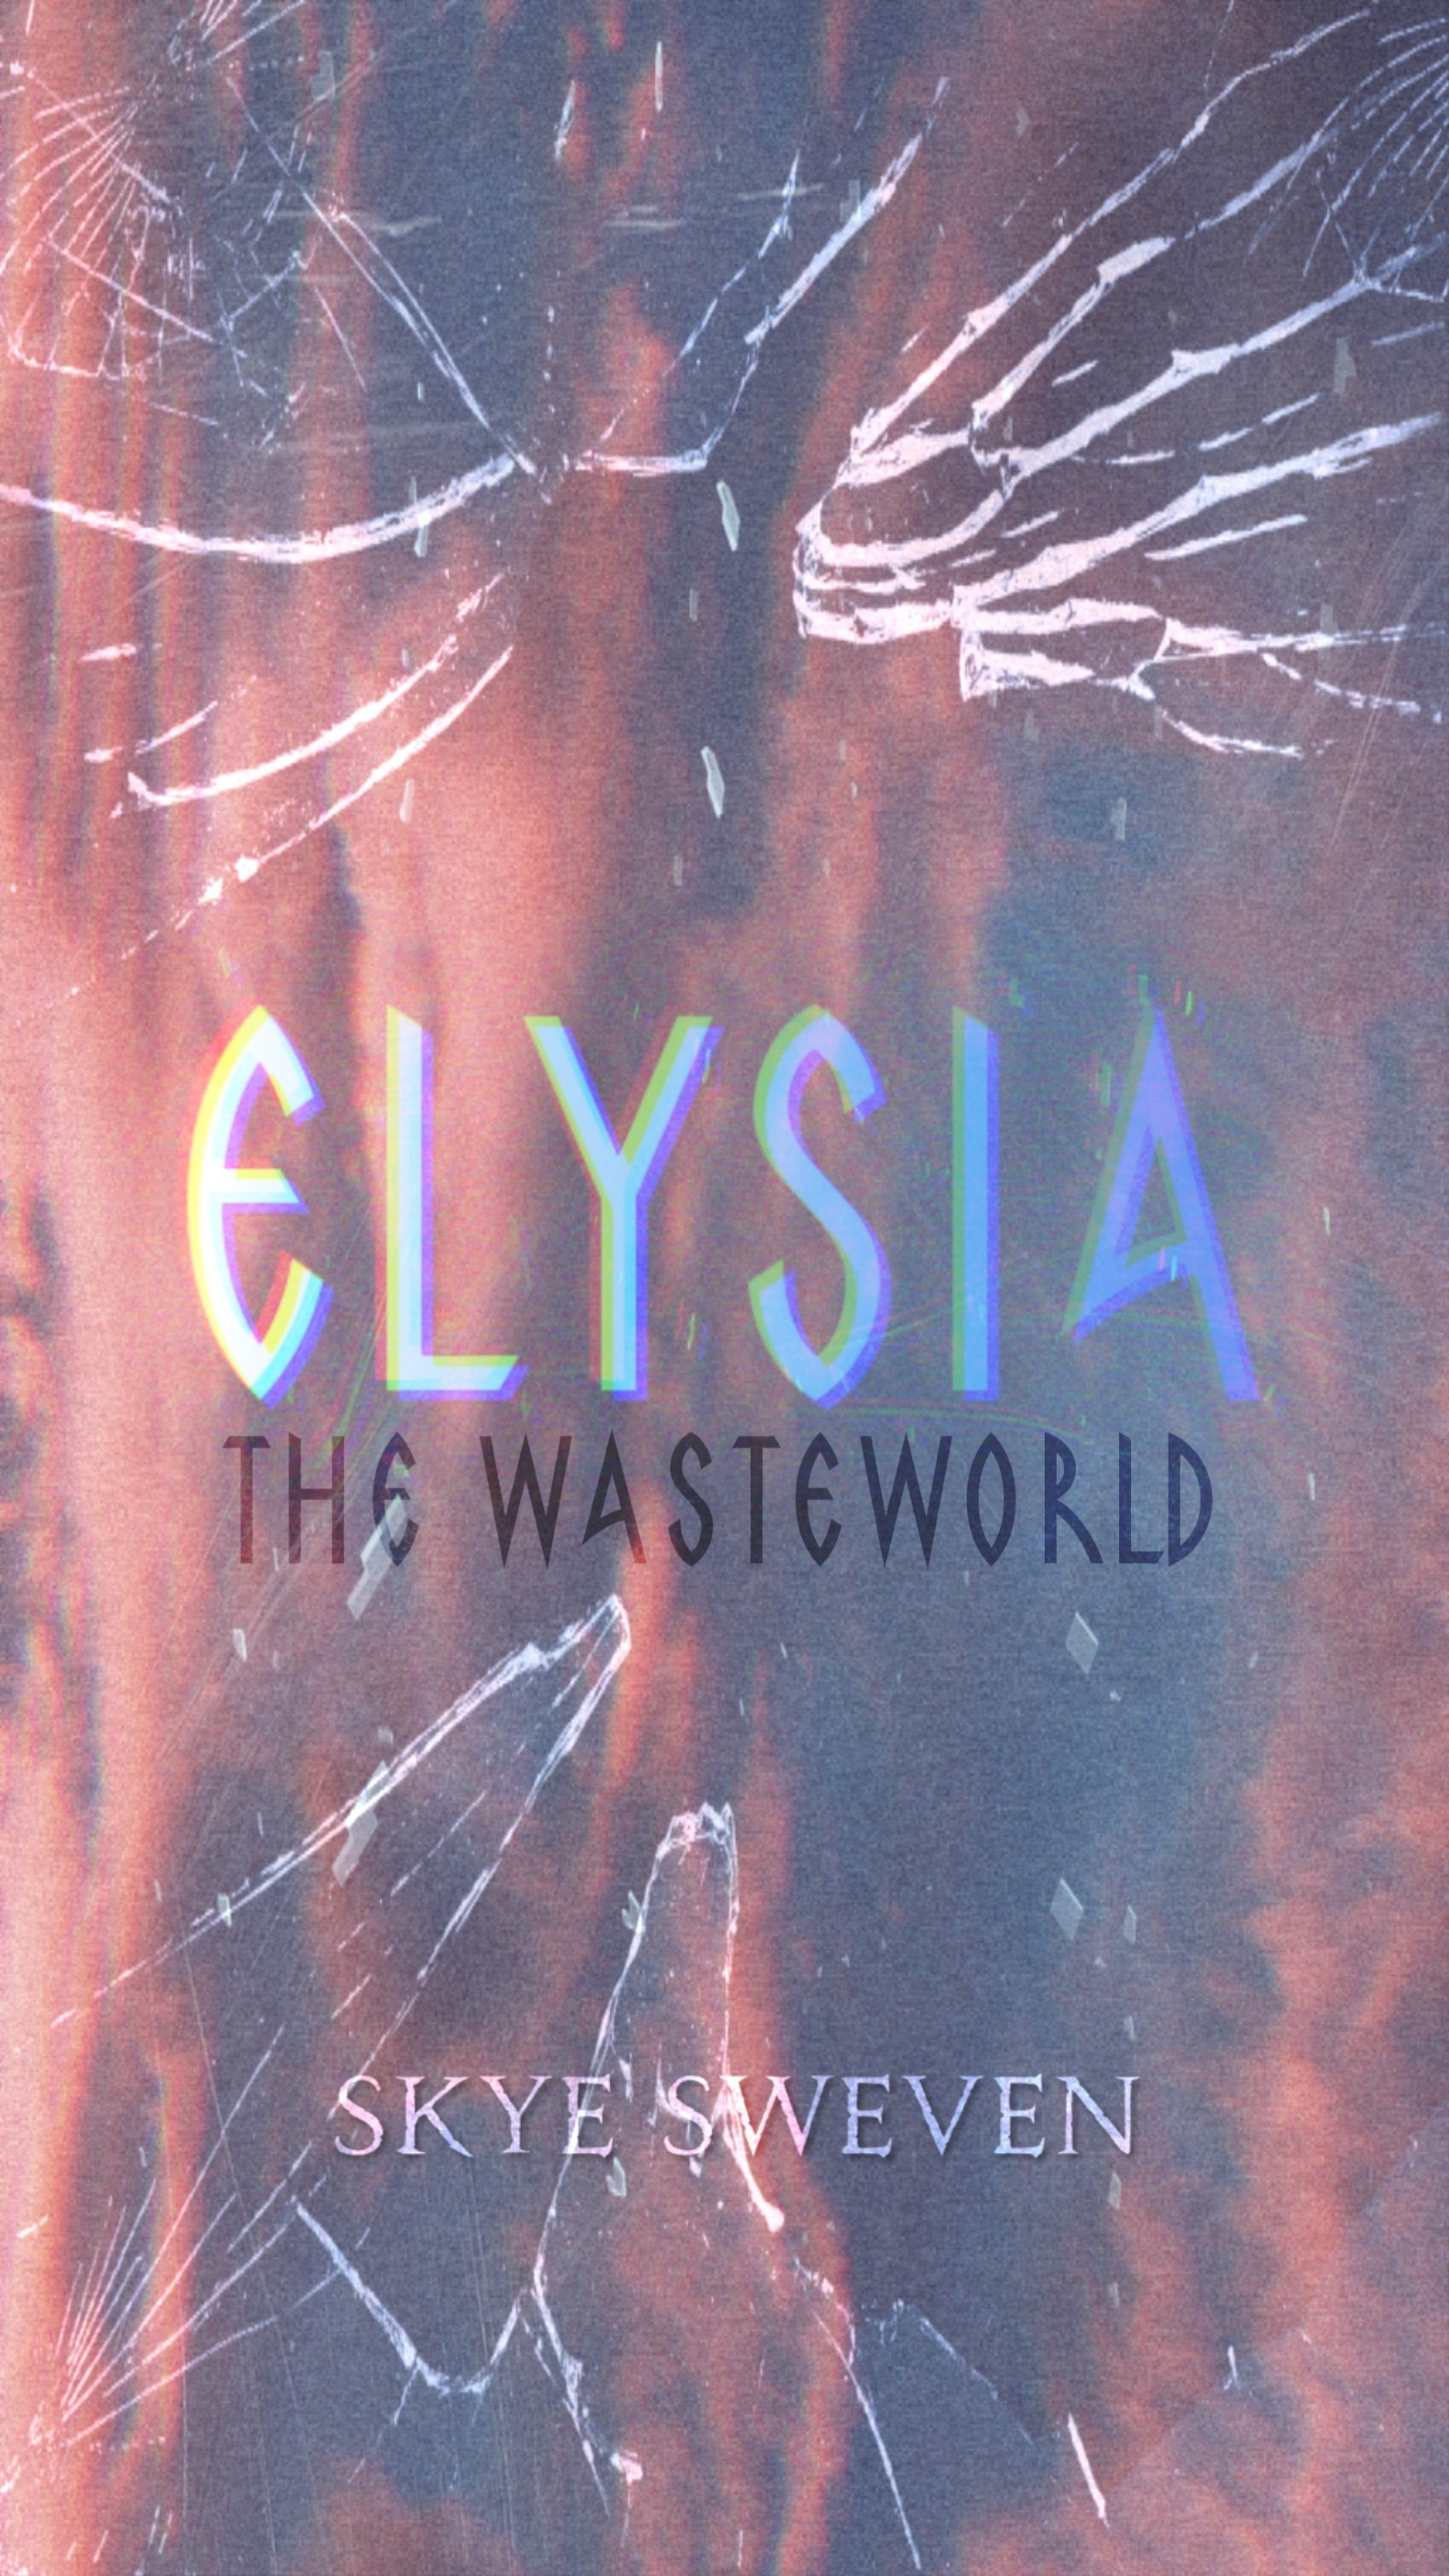 Elysia: The Wasteworld